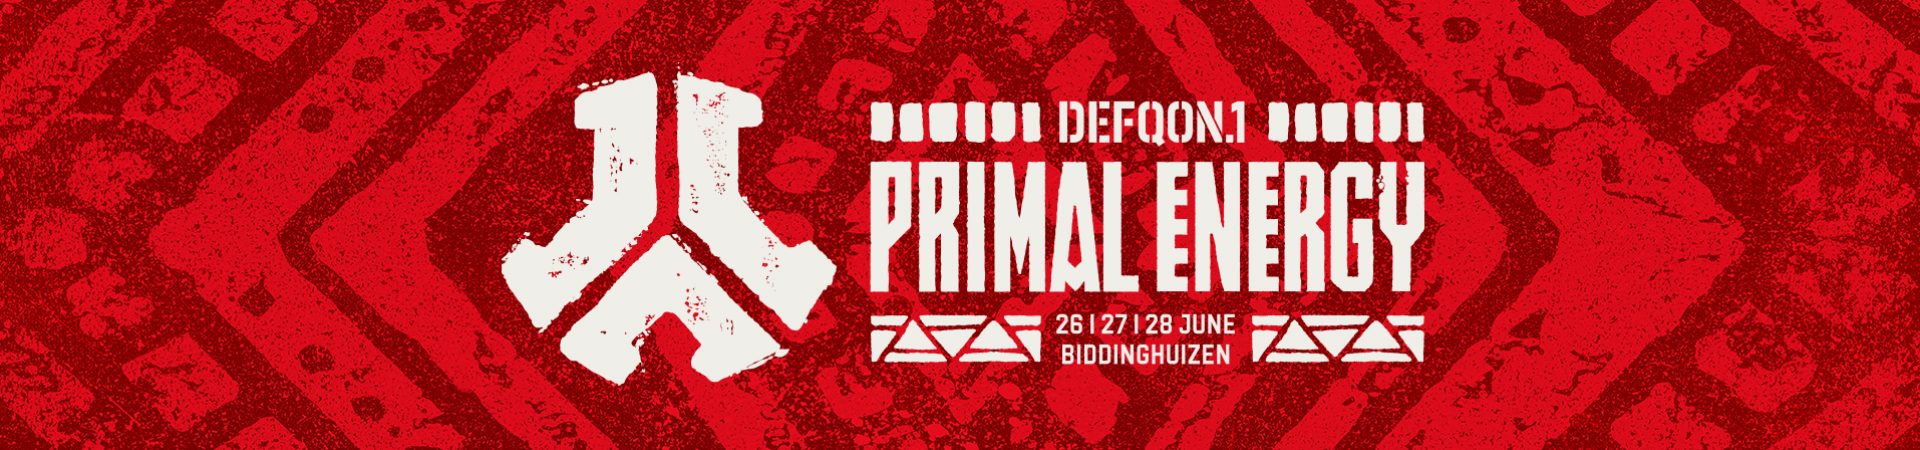 Website header Defqon.1 2020